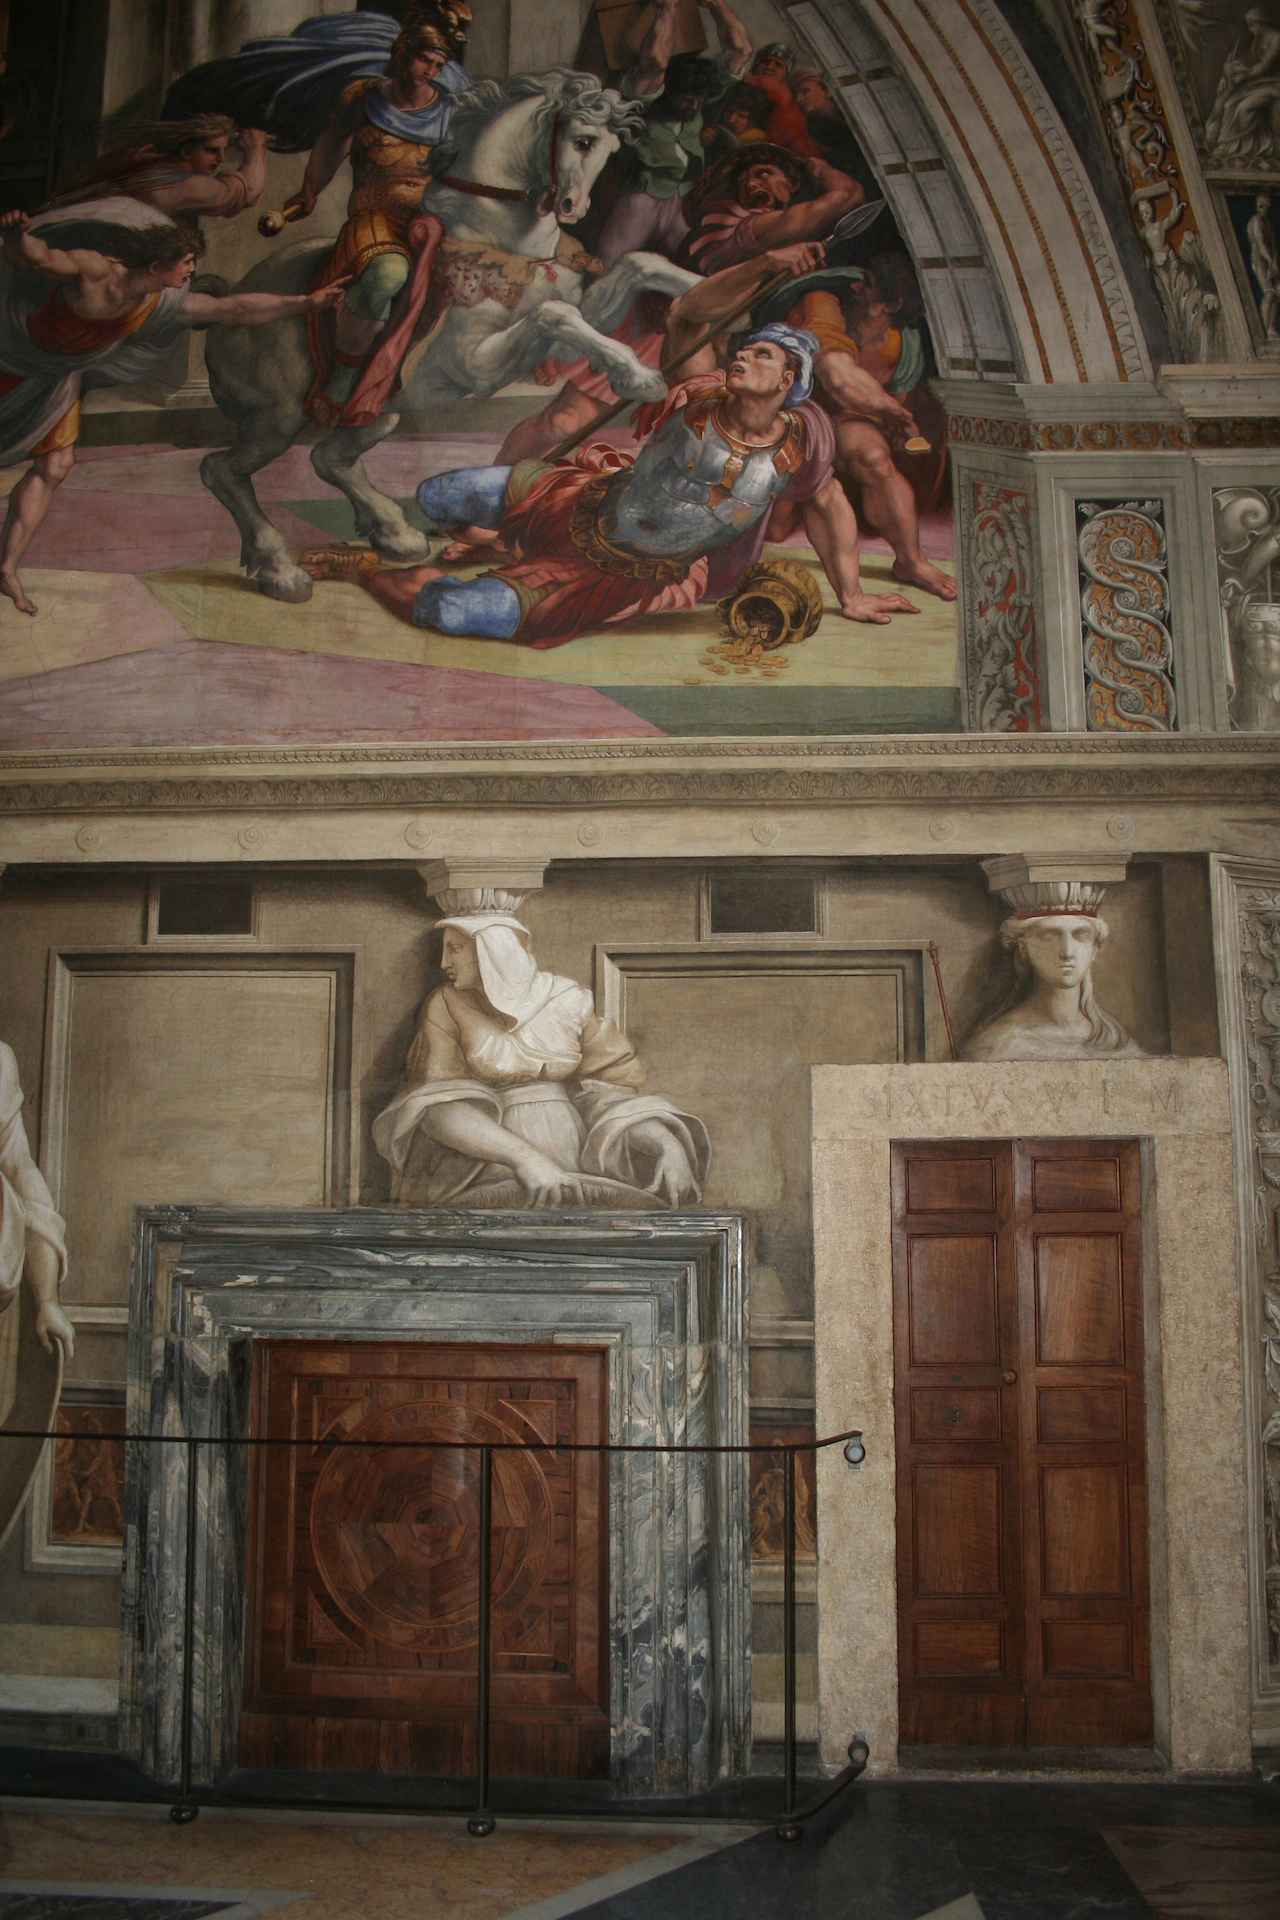 """Rome, Vatican Palace, Heliodorus room, view of the marble chimney located under Raphael's fresco, """"Expulsion of Heliodorus from the Temple"""" (1511–12) (photo © Charlotte Guichard, reproduced with the permission of the Vatican Museums)"""